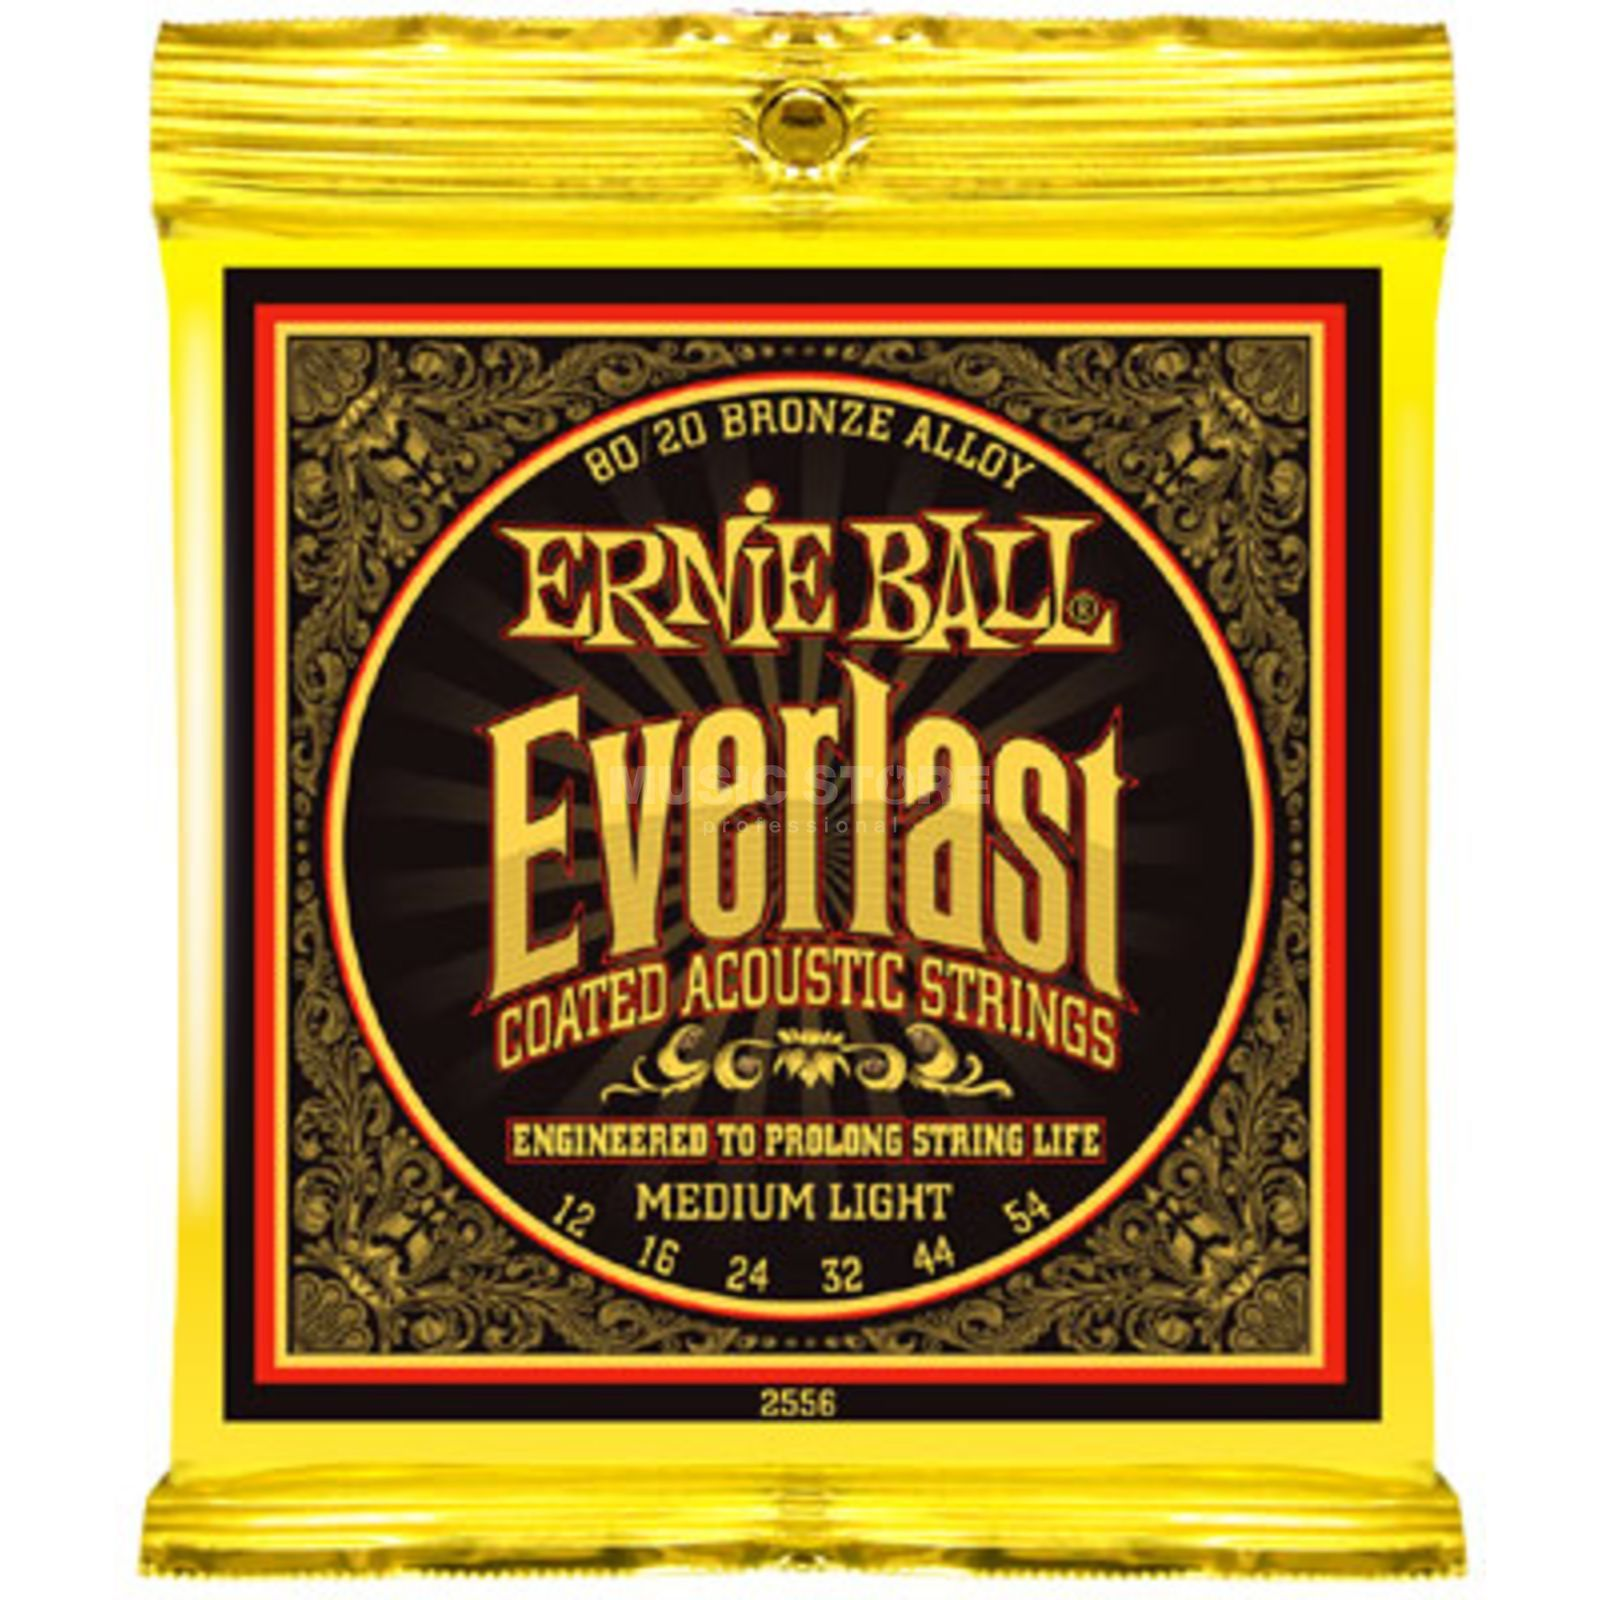 Ernie Ball A-Guit. Strings 12-54 Everlast Bronze, EB2556 Produktbillede